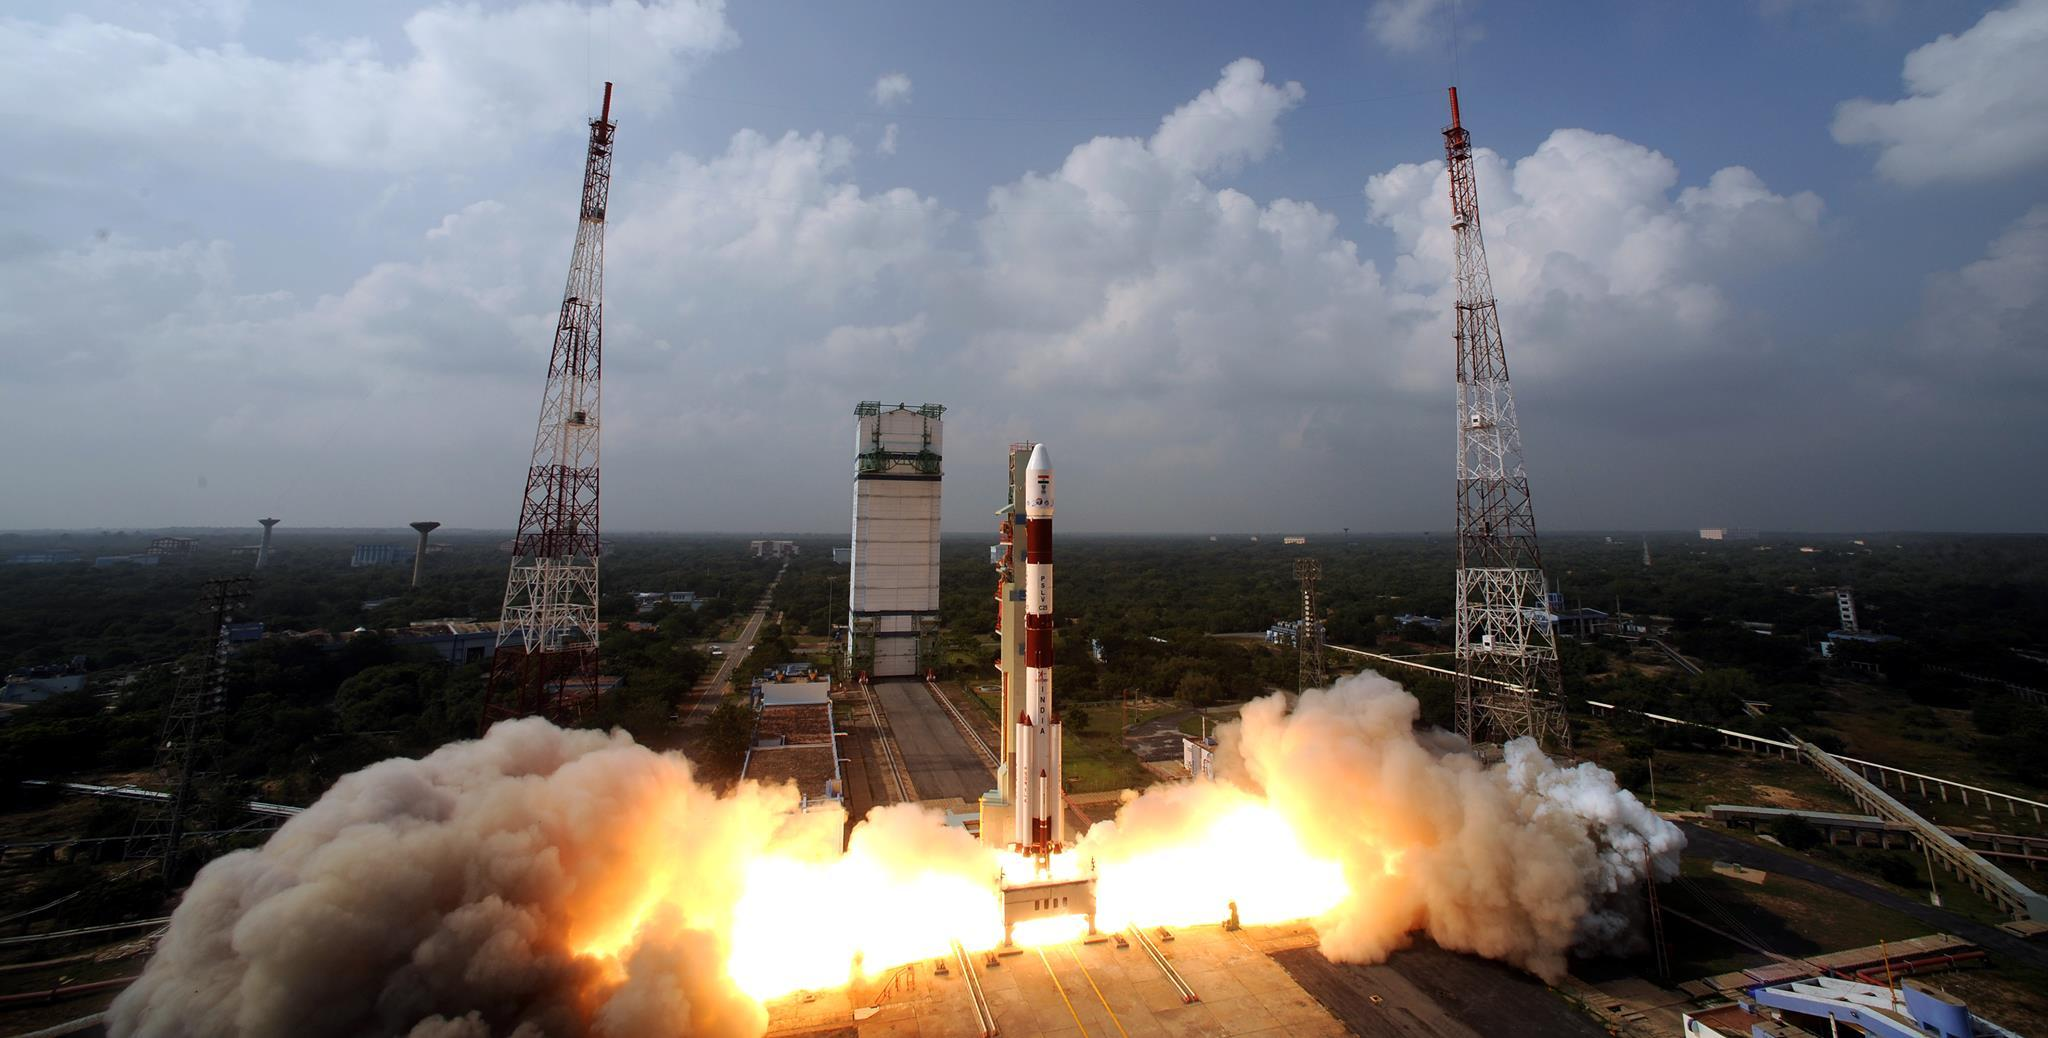 ISRO's PSLV rocket lifts off from the Satish Dhawan Space Centre. Image: ISRO